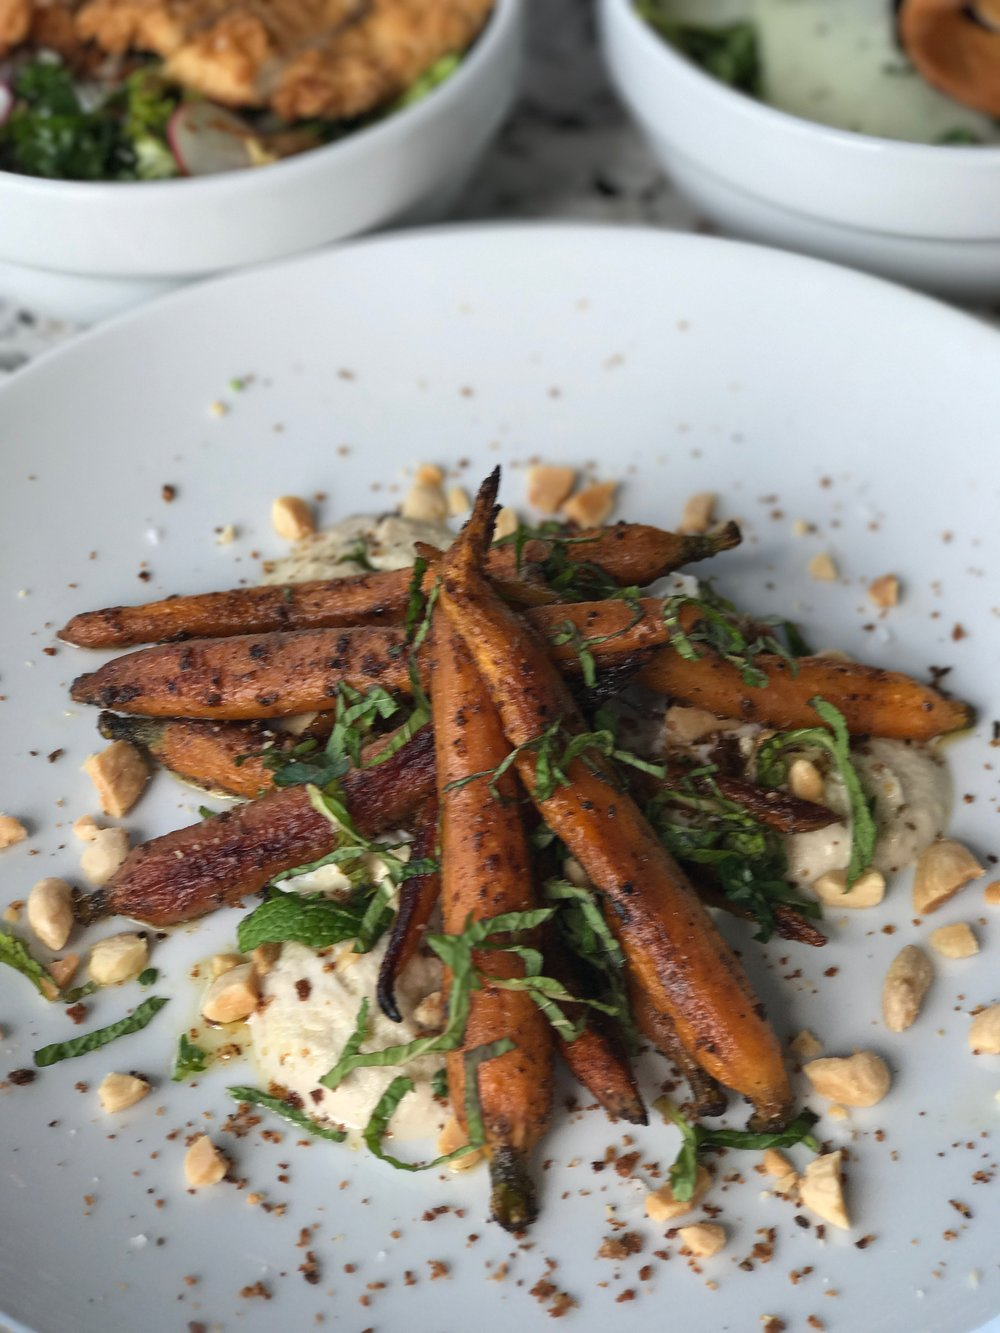 Roasted Carrots with Hummus and Pistachios